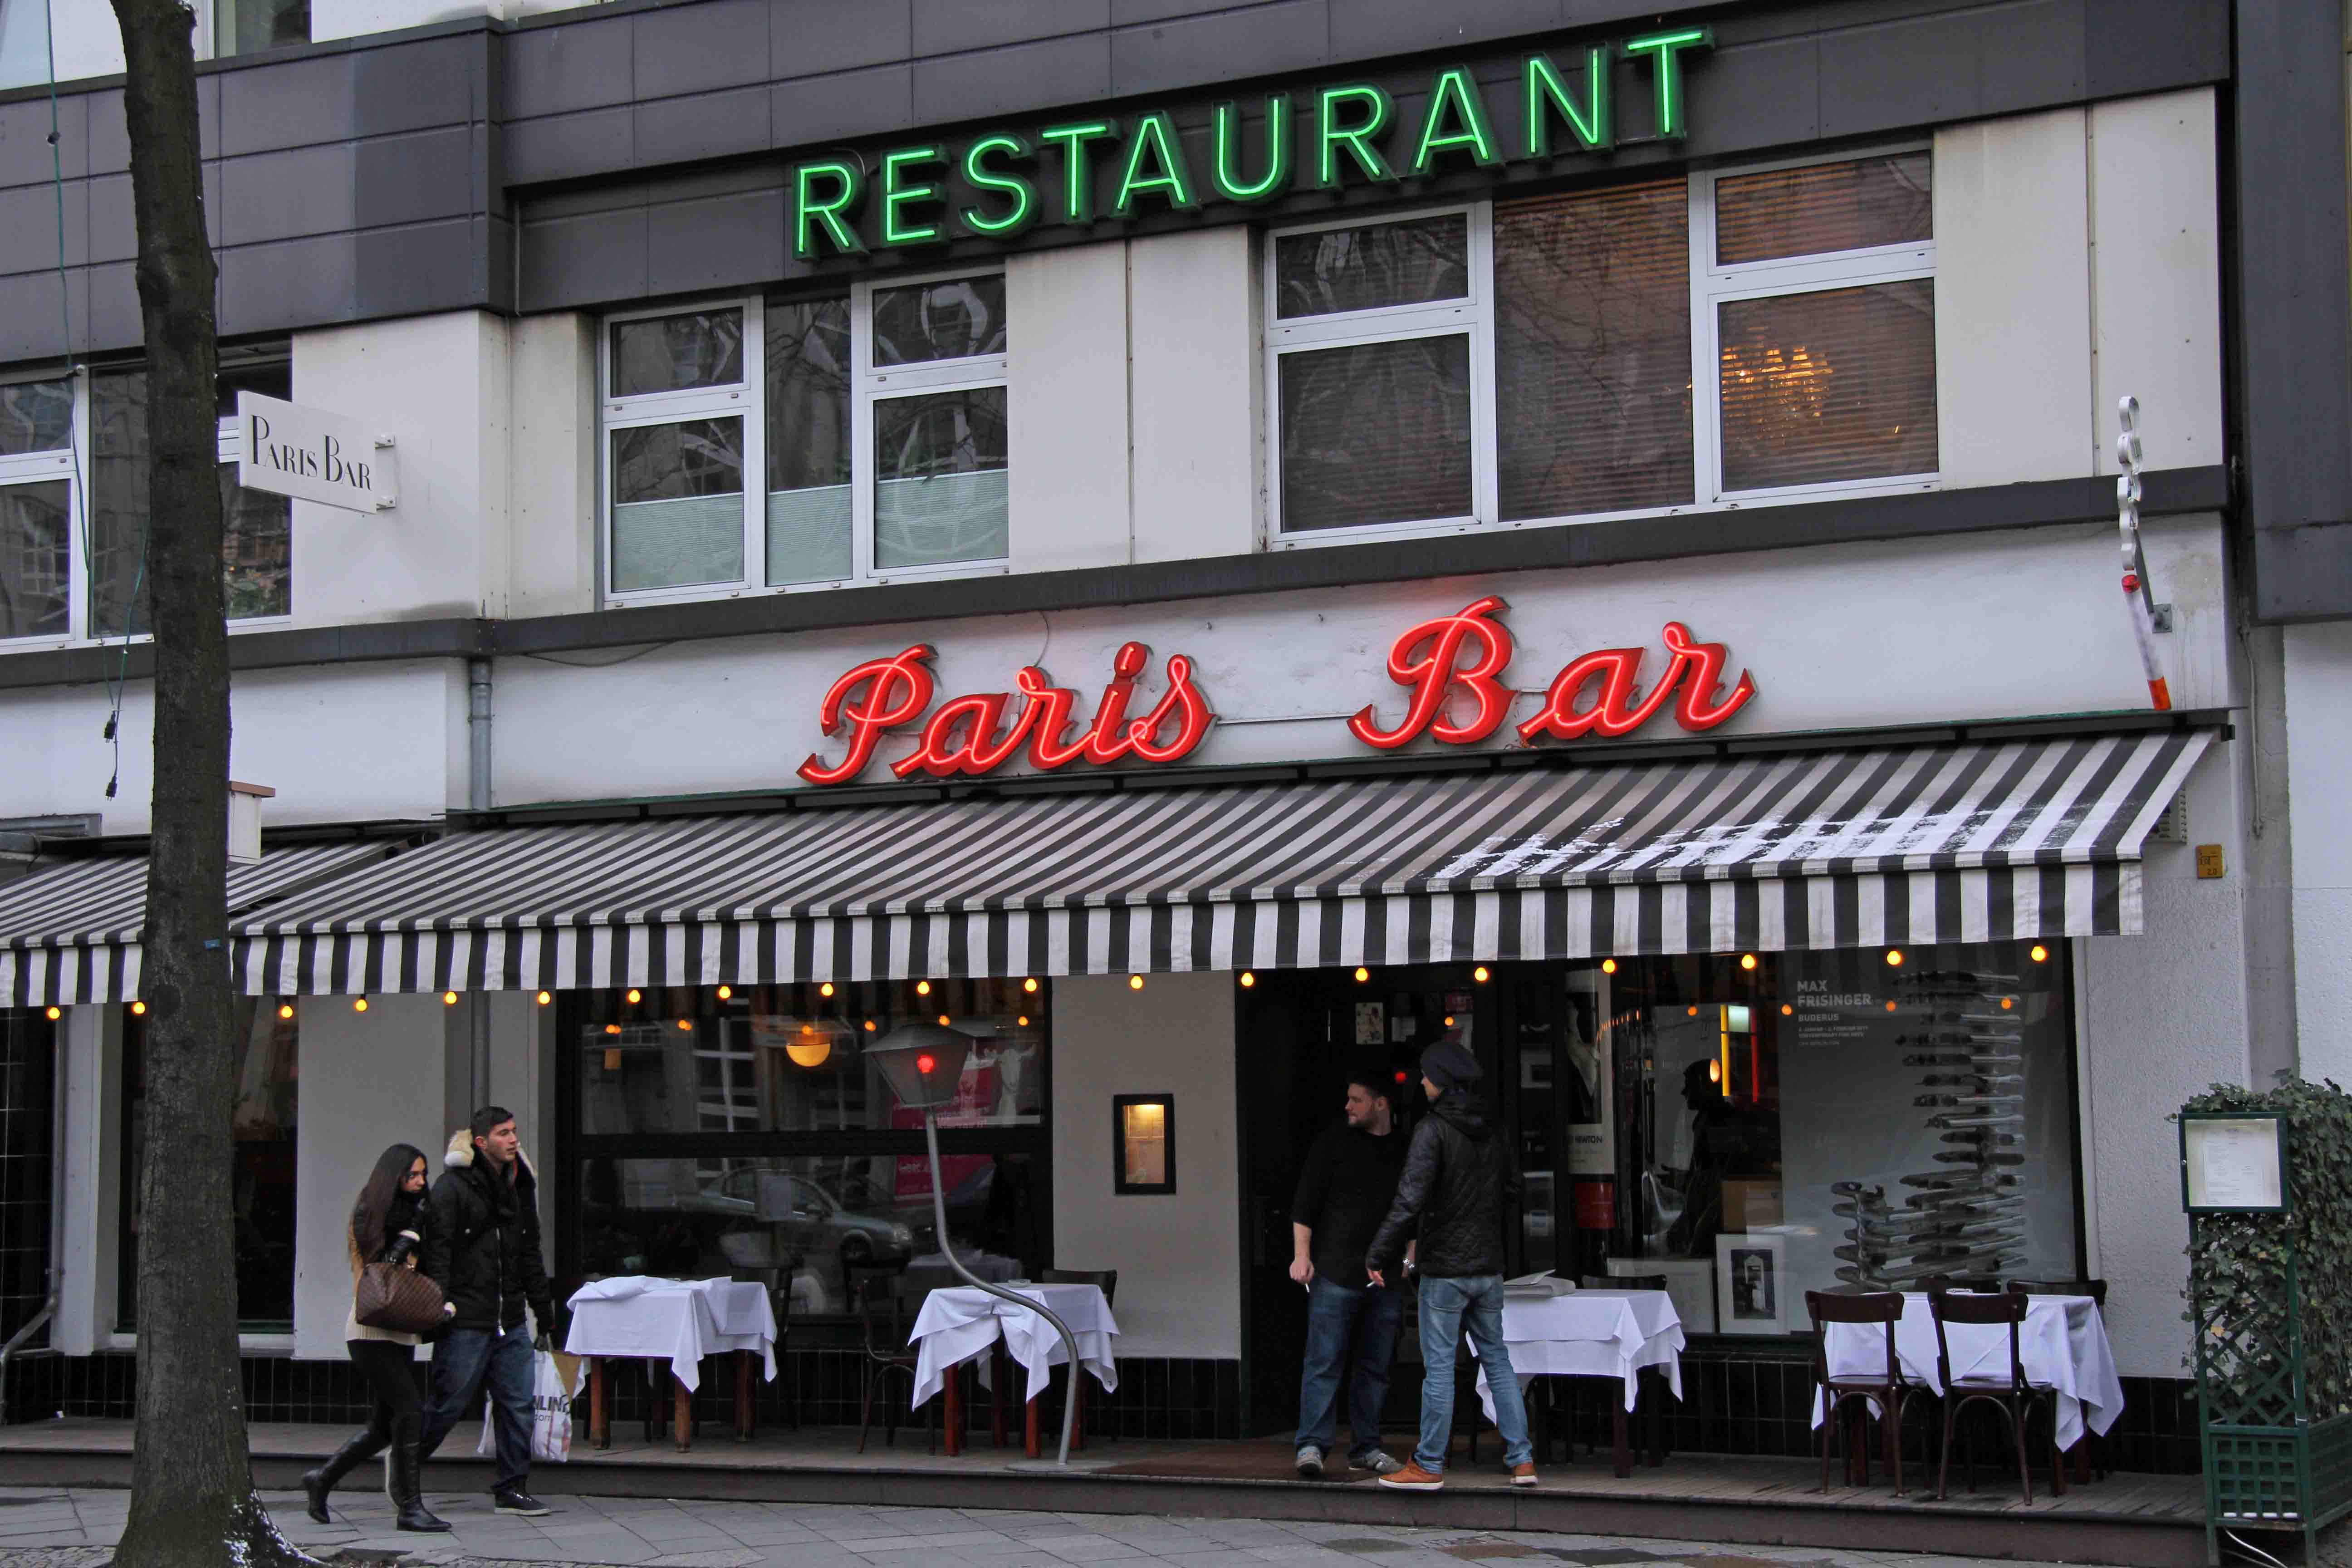 Paris Bar - a Bowie haunt in Berlin